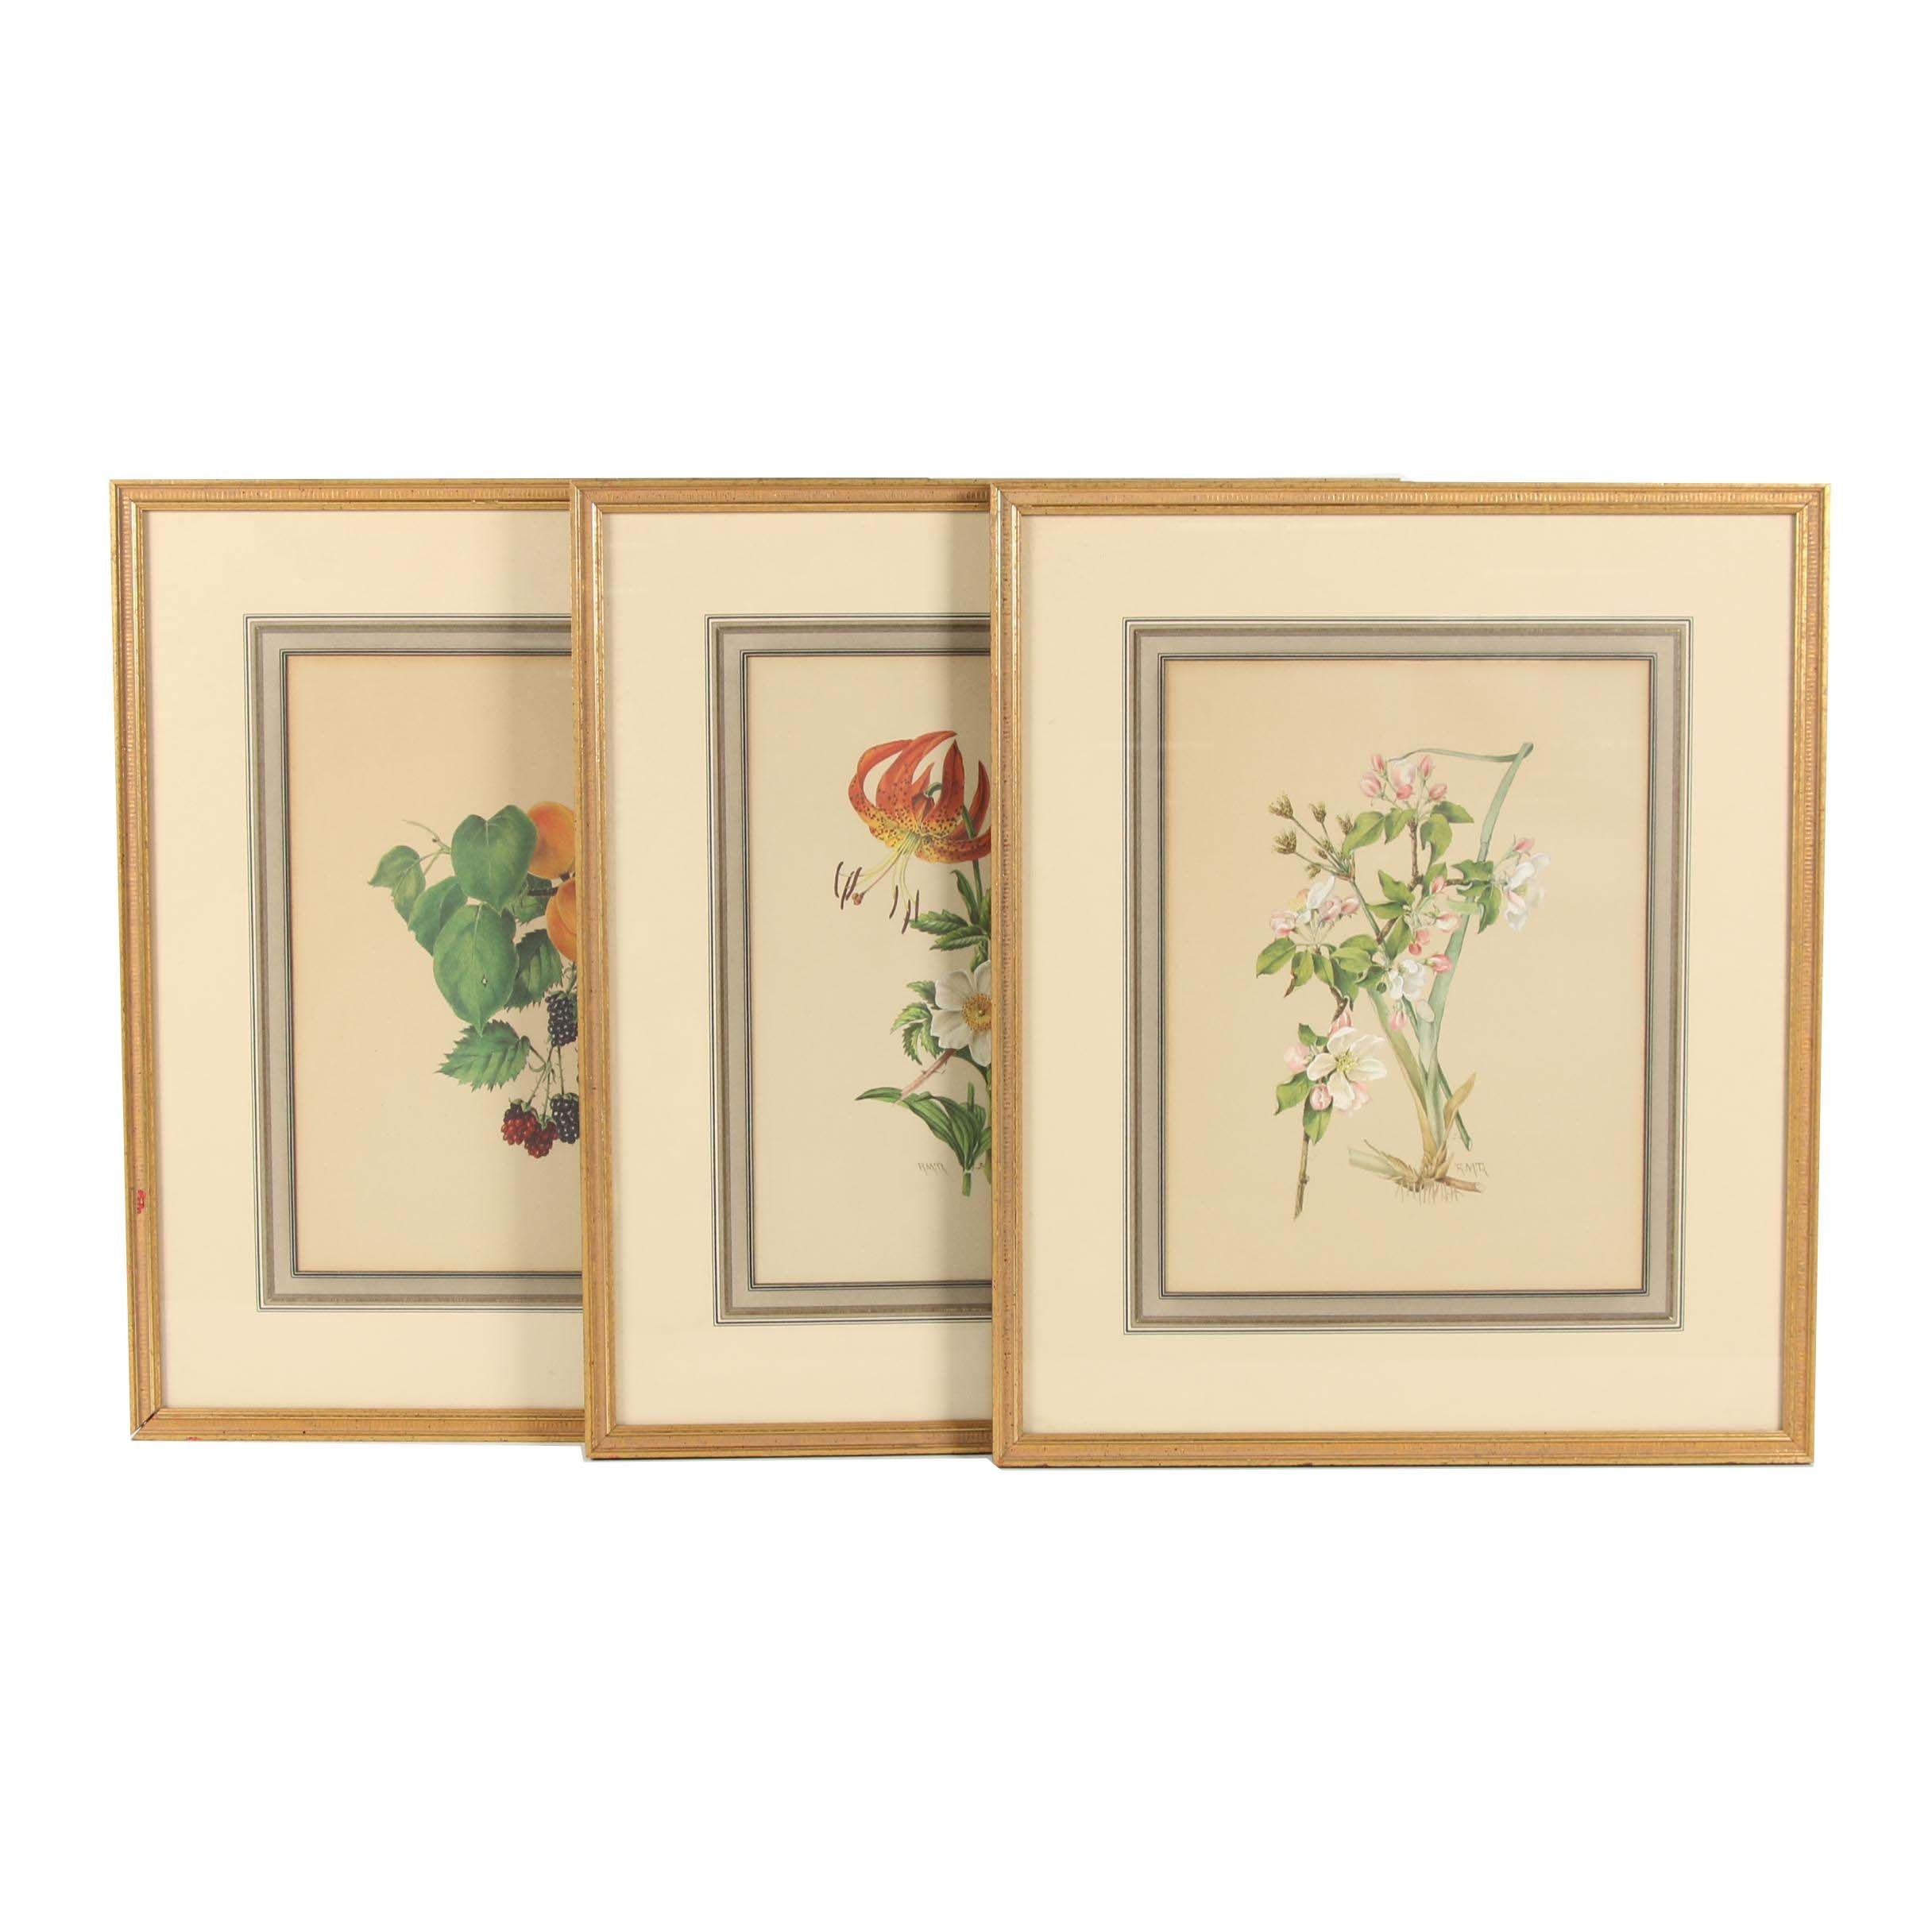 Offset Lithographs after R. M. T.